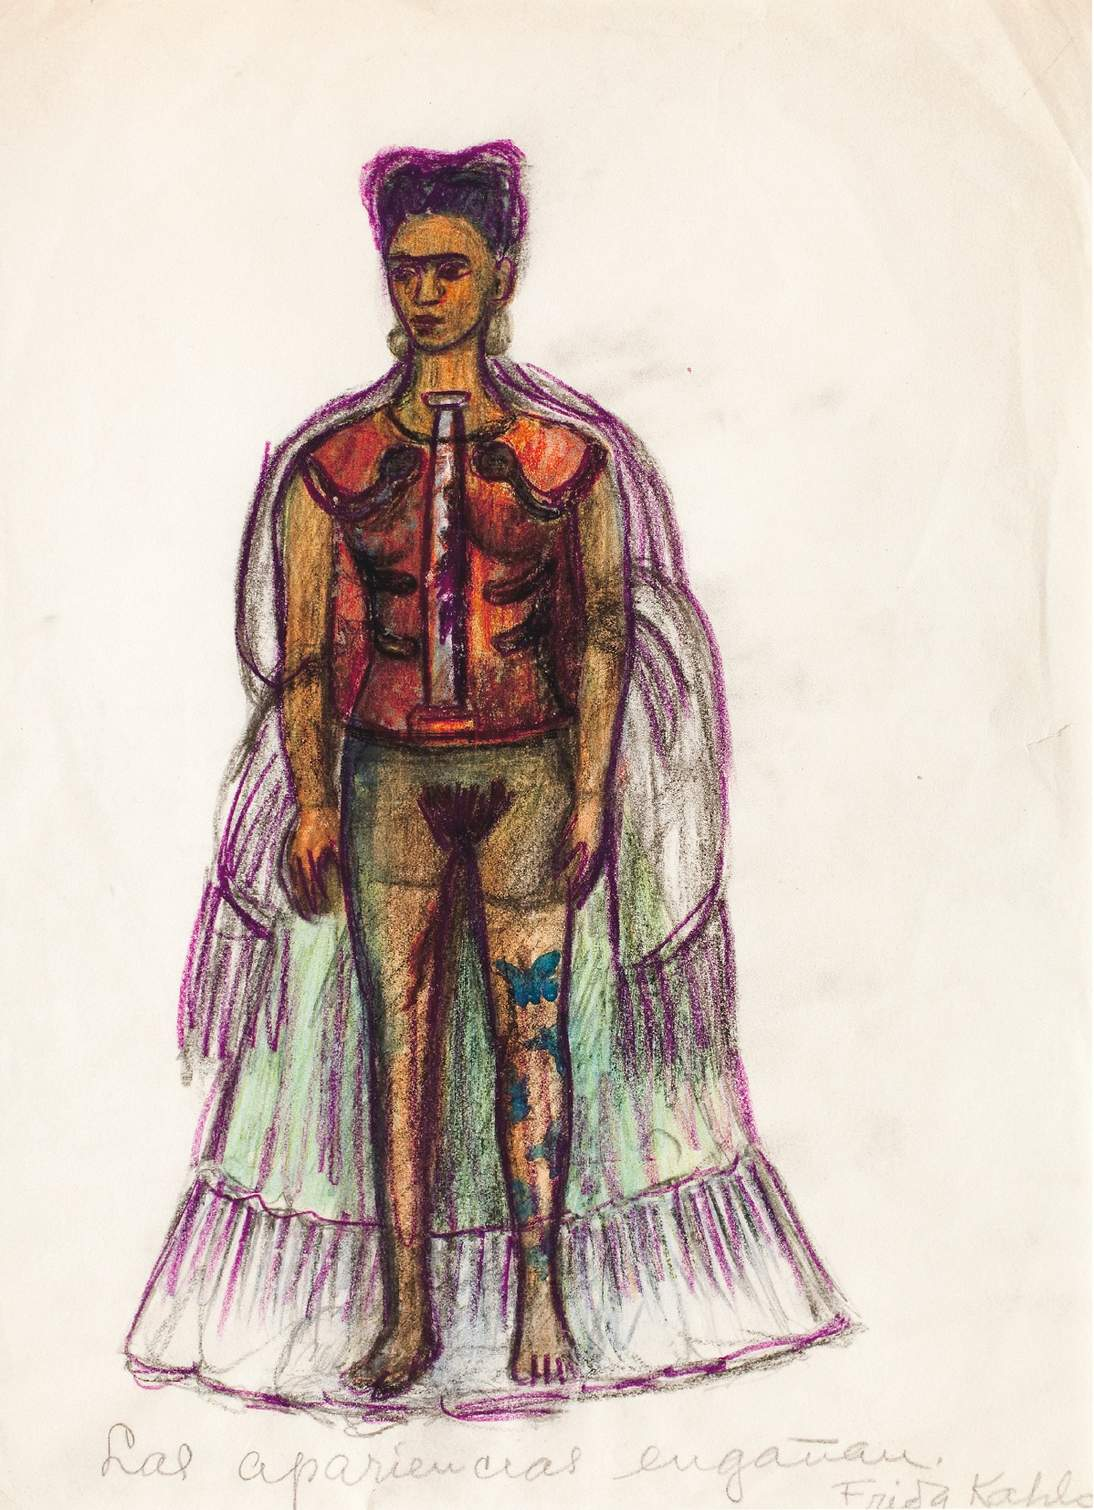 """Frida Kahlo, """"Appearances Can Be Deceiving,"""" no date. Charcoal and pencil on paper, 11 ⅜ x 8 ¼ in. (29 x 21 cm). Museo Frida Kahlo © 2020 Banco de México Diego Rivera & Frida Kahlo Museums Trust. Av. 5 de Mayo No. 2, Col. Centro, alc. Cuauhtémoc, C.P. 06000, Mexico City / Artists Rights Society (ARS), New York"""